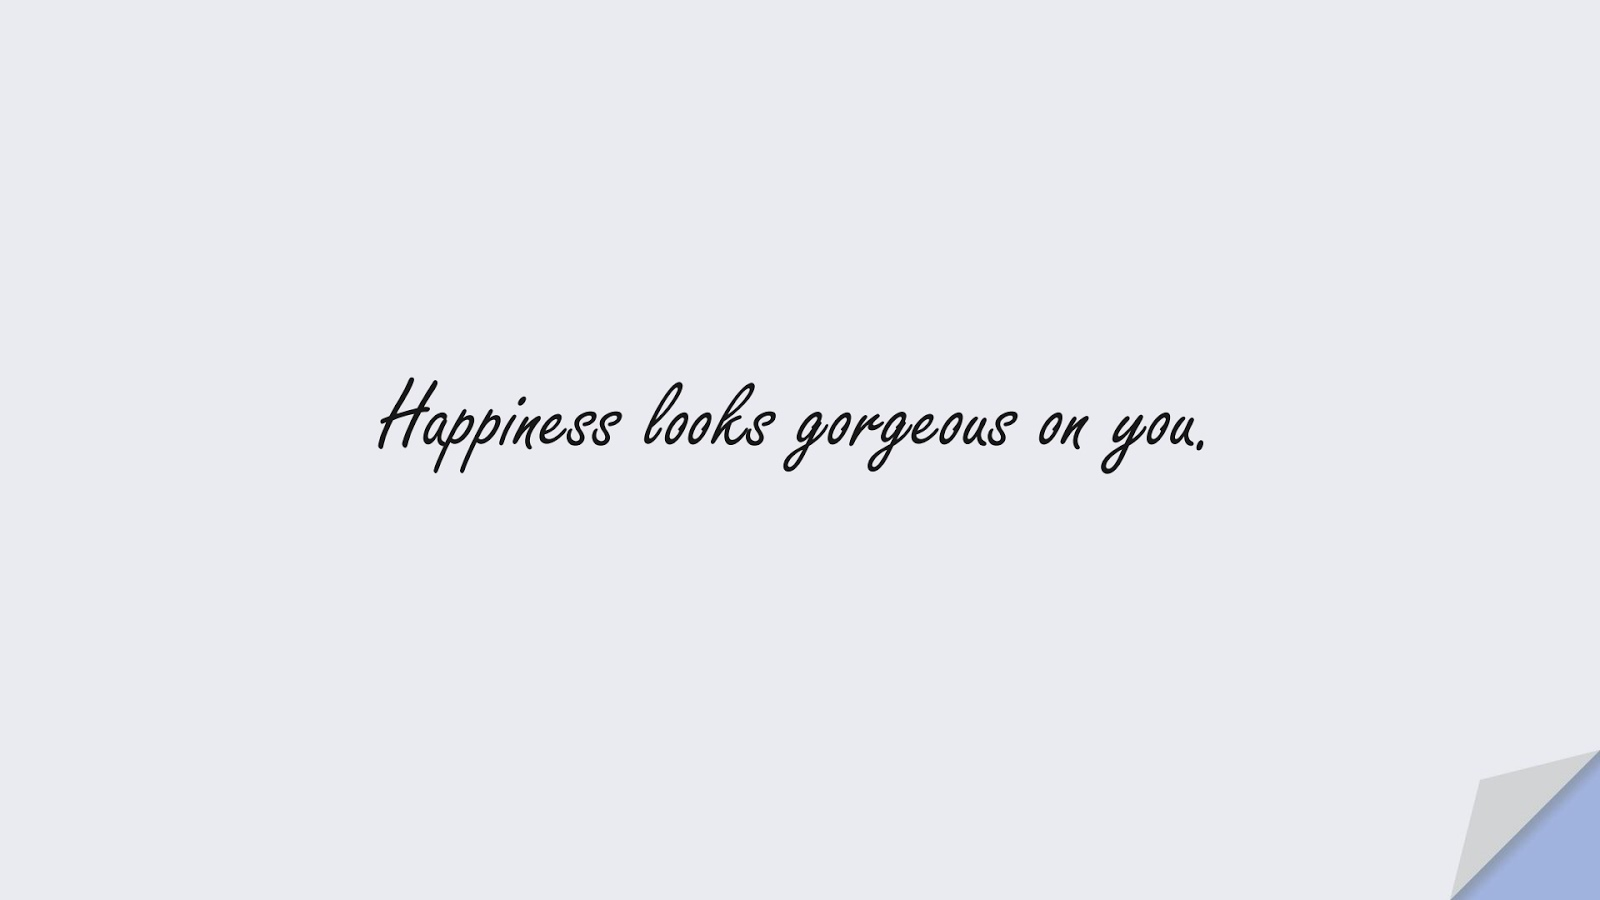 Happiness looks gorgeous on you.FALSE